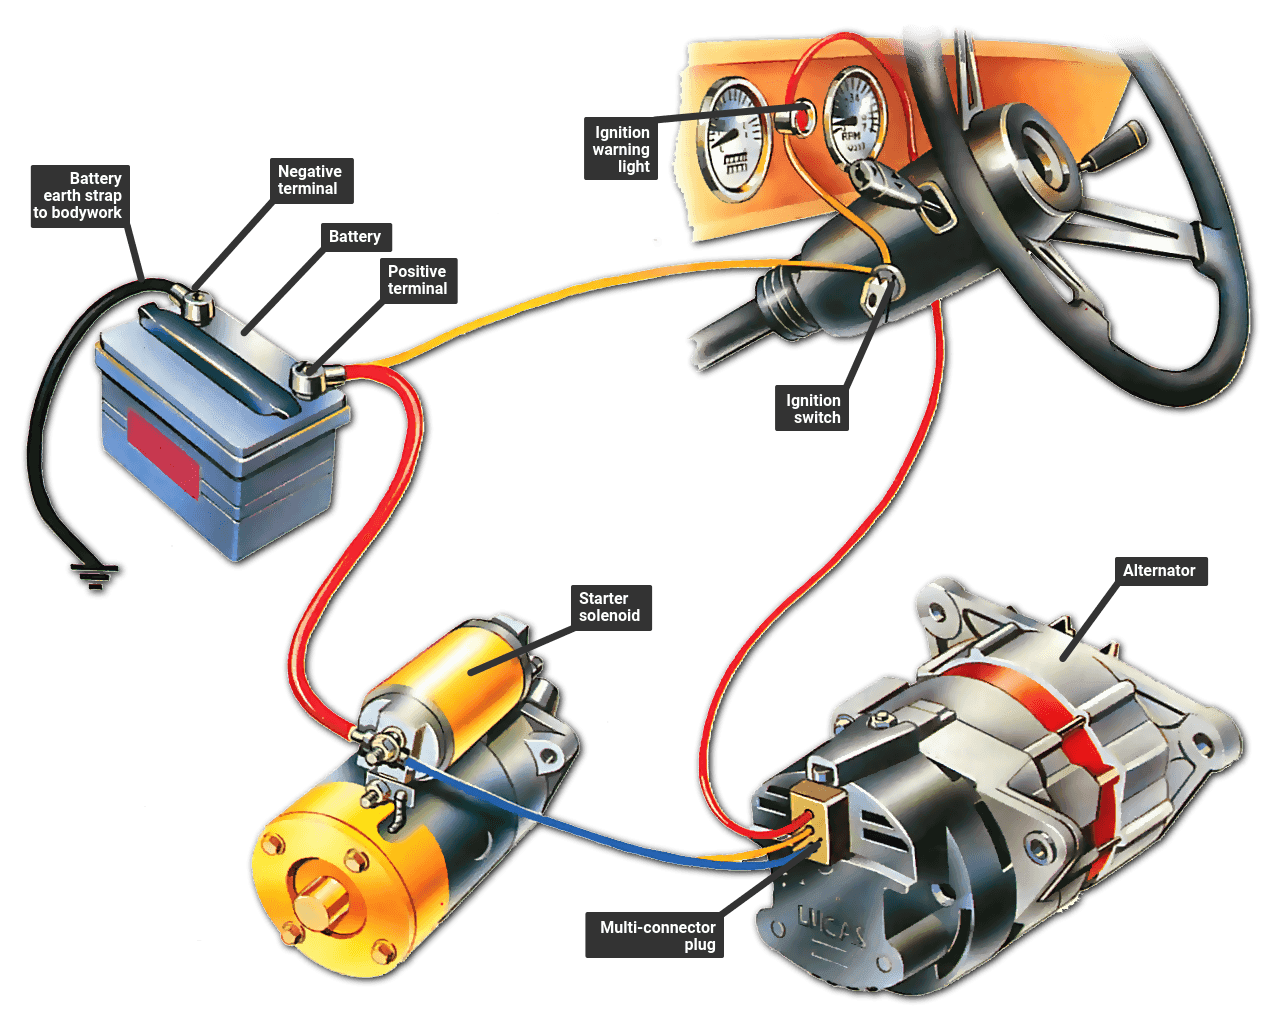 hight resolution of basic ignition system diagram